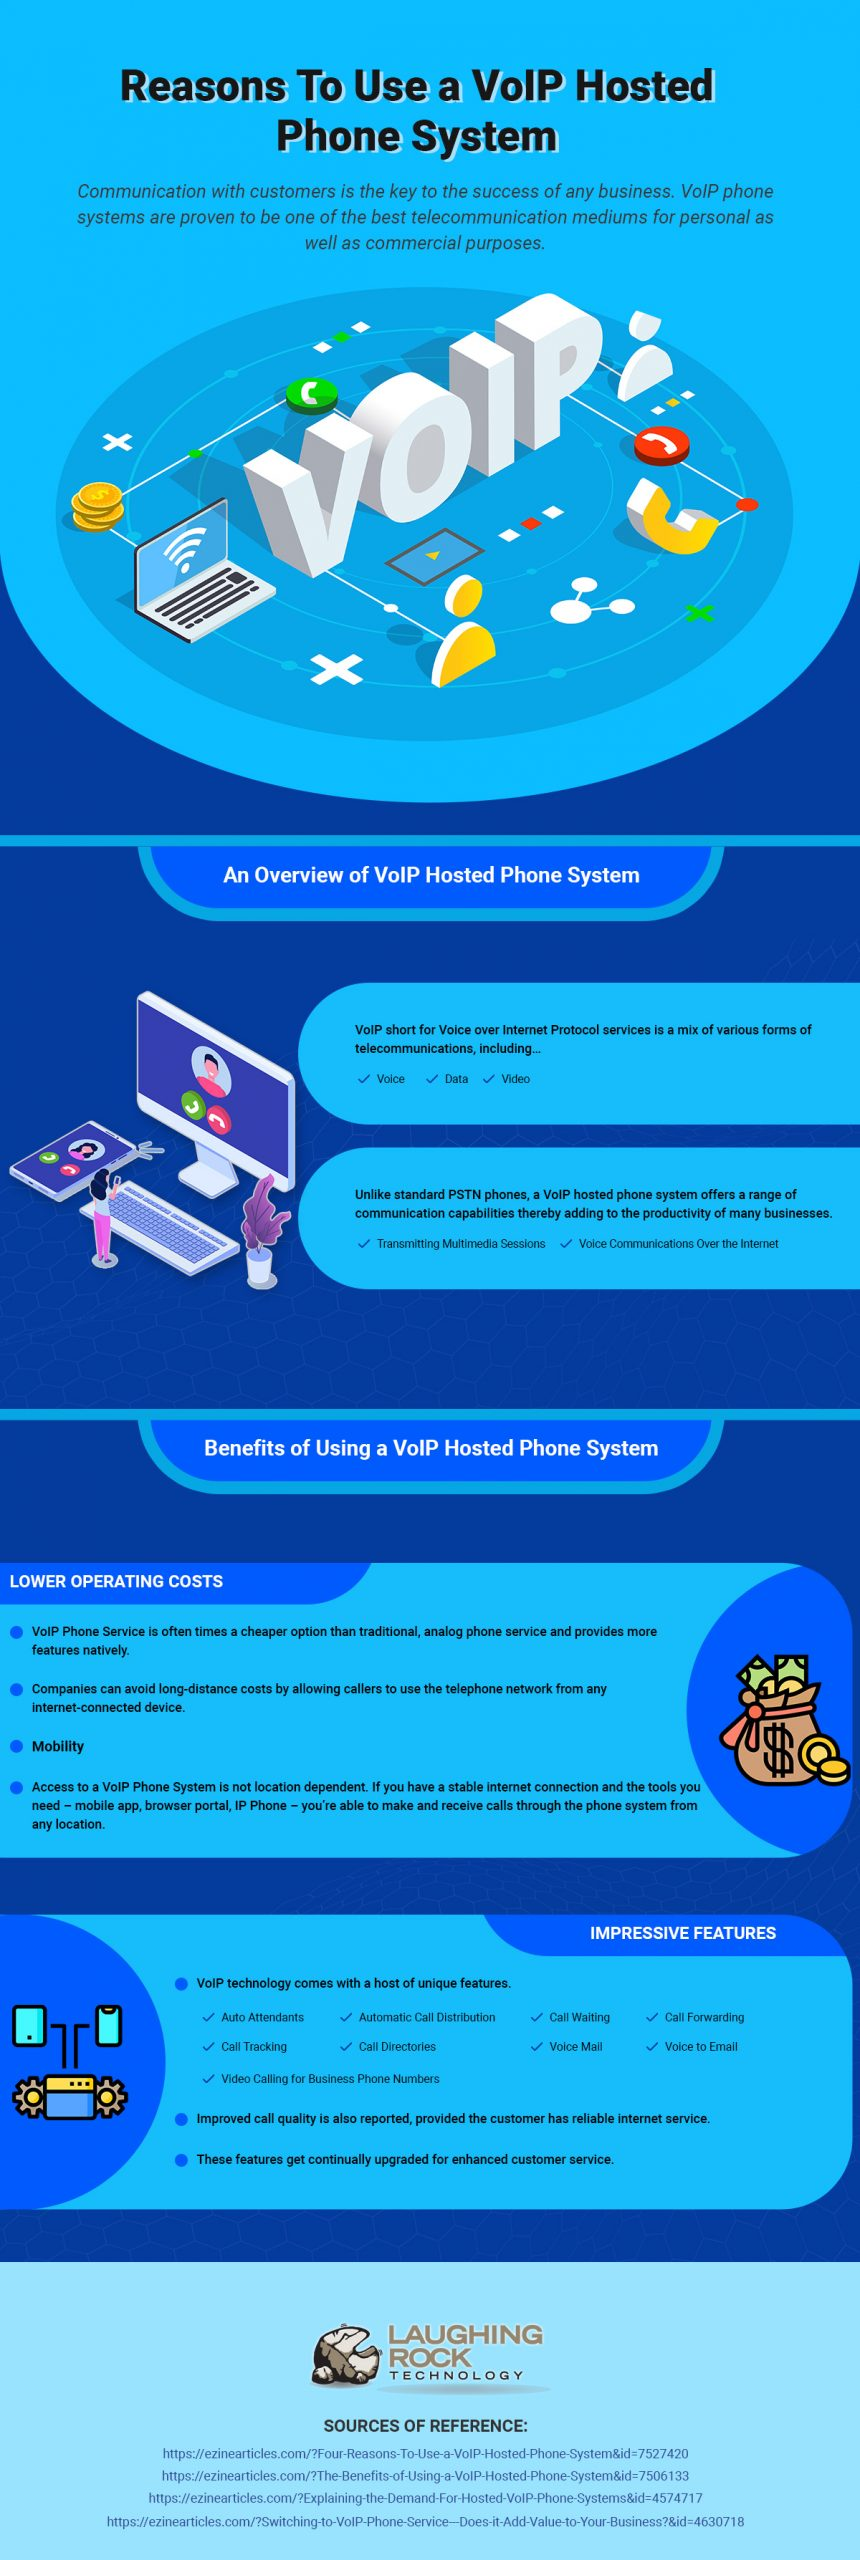 Reasons To Used A VoIP Hosted Phone System Infographic